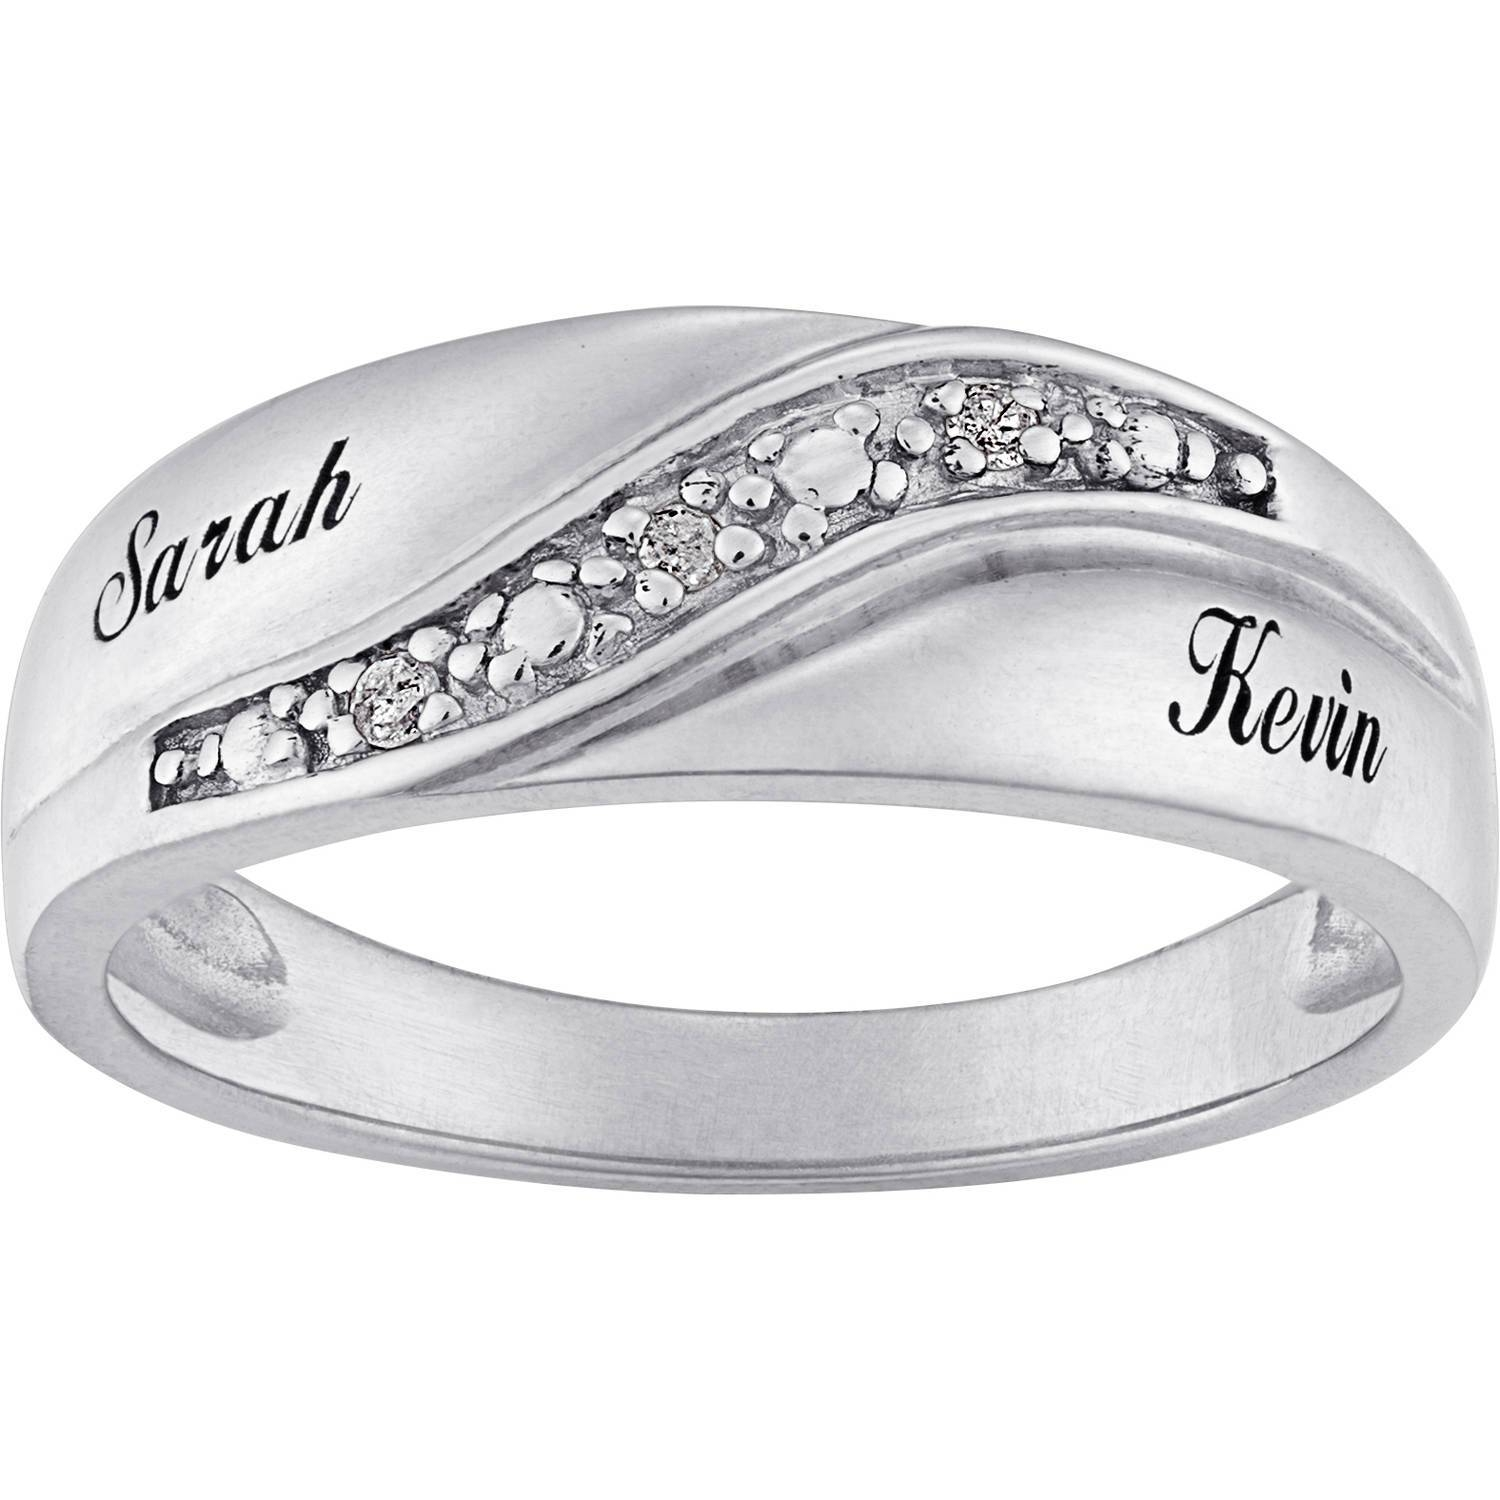 Personalized Sterling Silver Mens Diamond Accent Name Wedding Band Within Walmart Wedding Bands For Women (View 7 of 15)